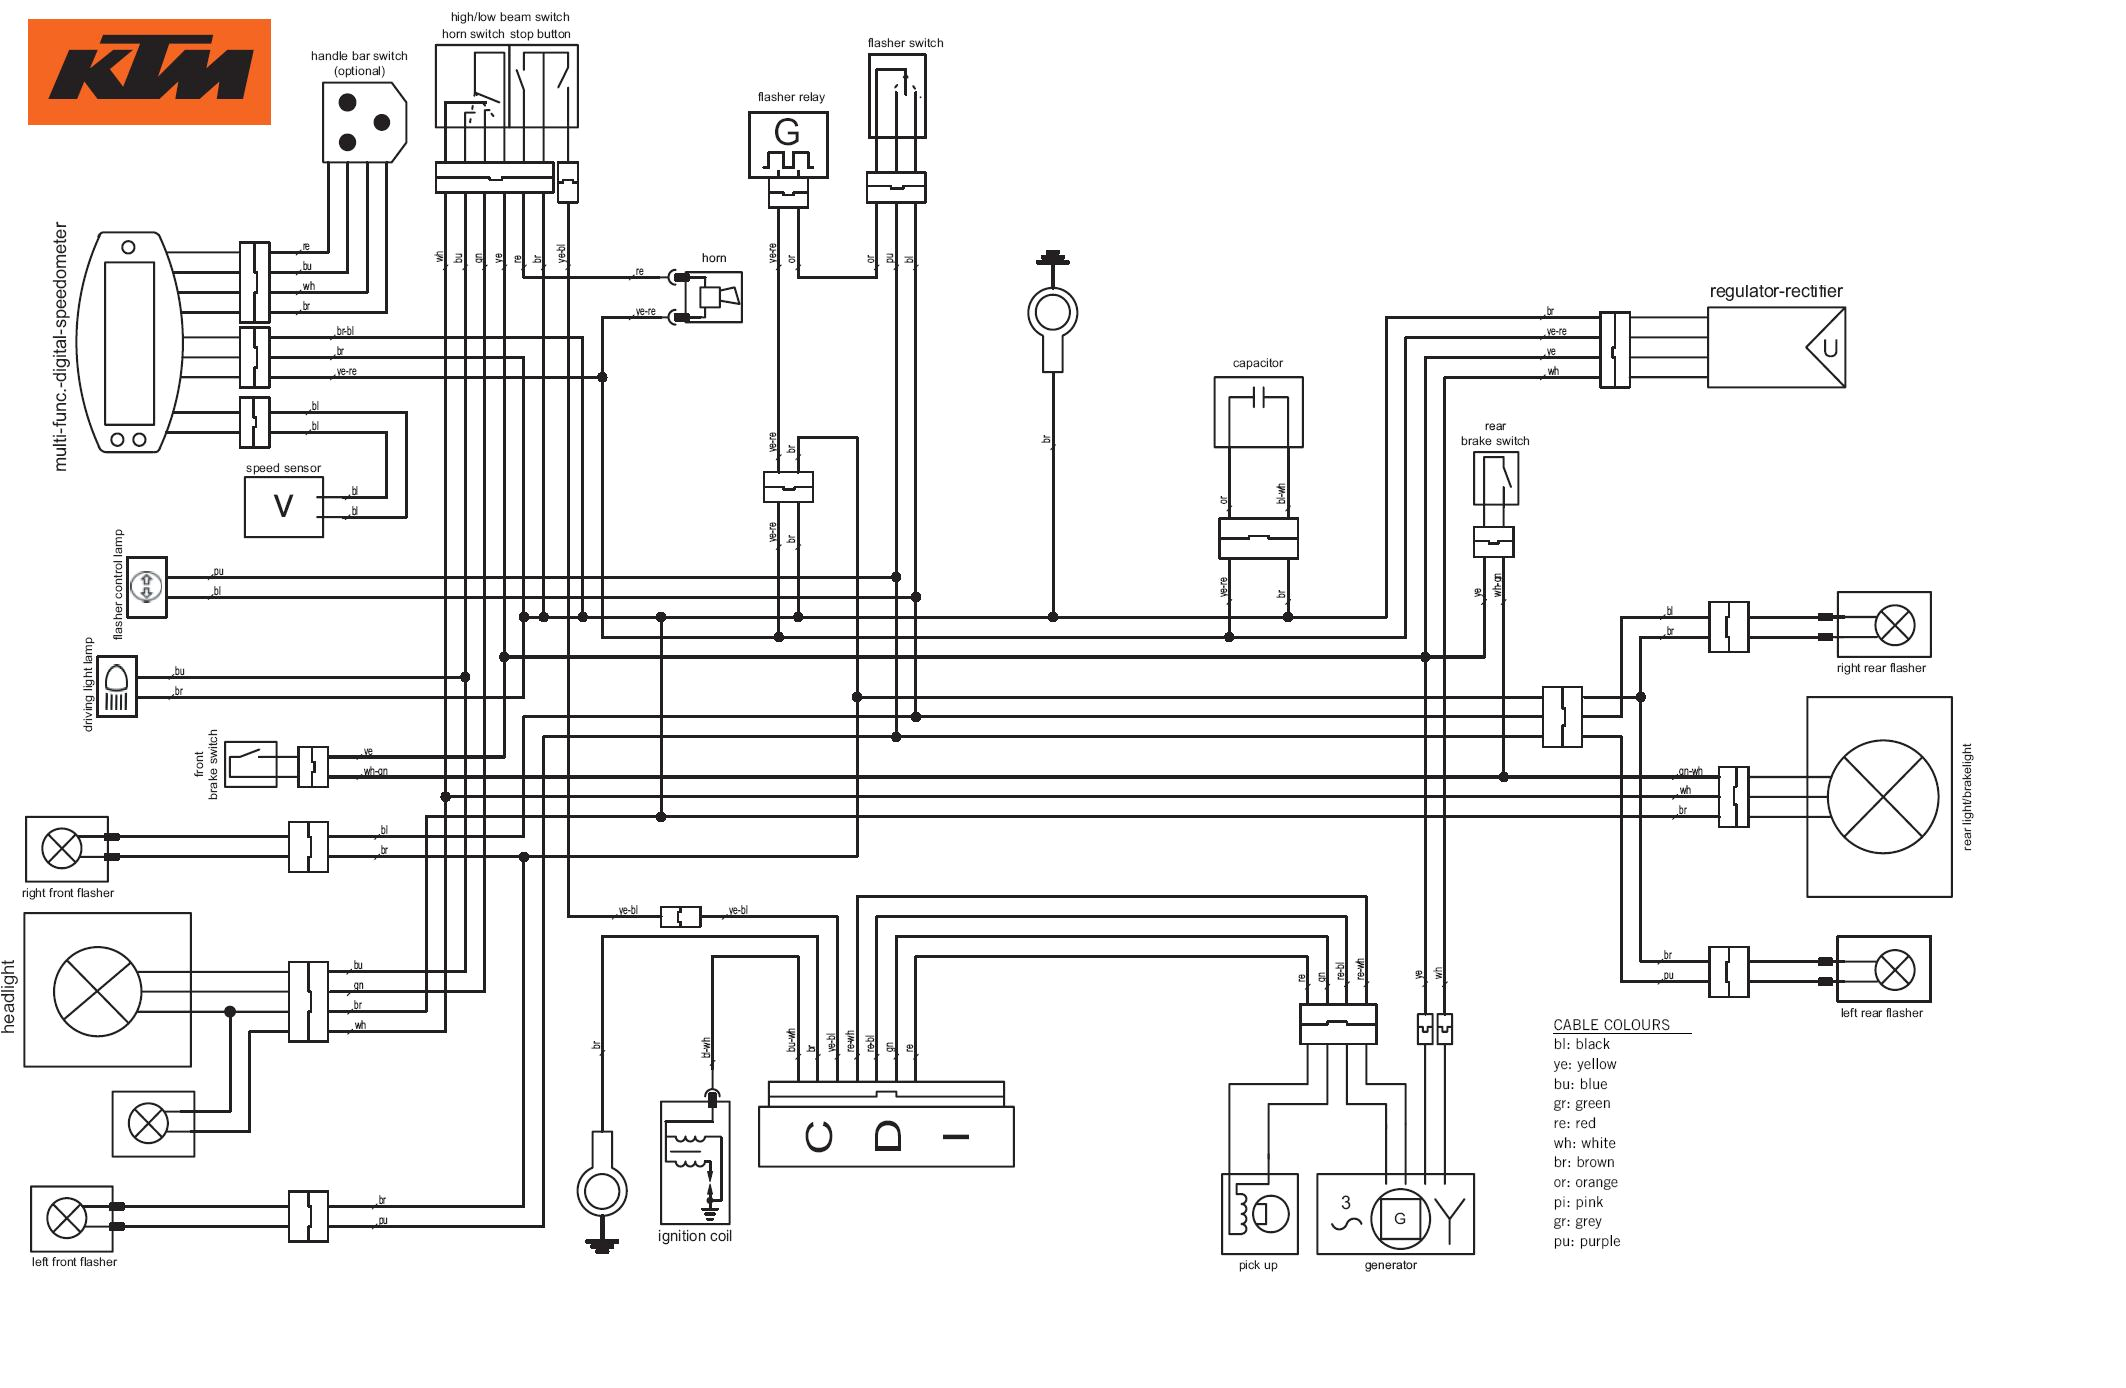 ktm 350 freeride wiring diagram wiring diagram load ktm 350 wiring diagram wiring diagram inside ktm